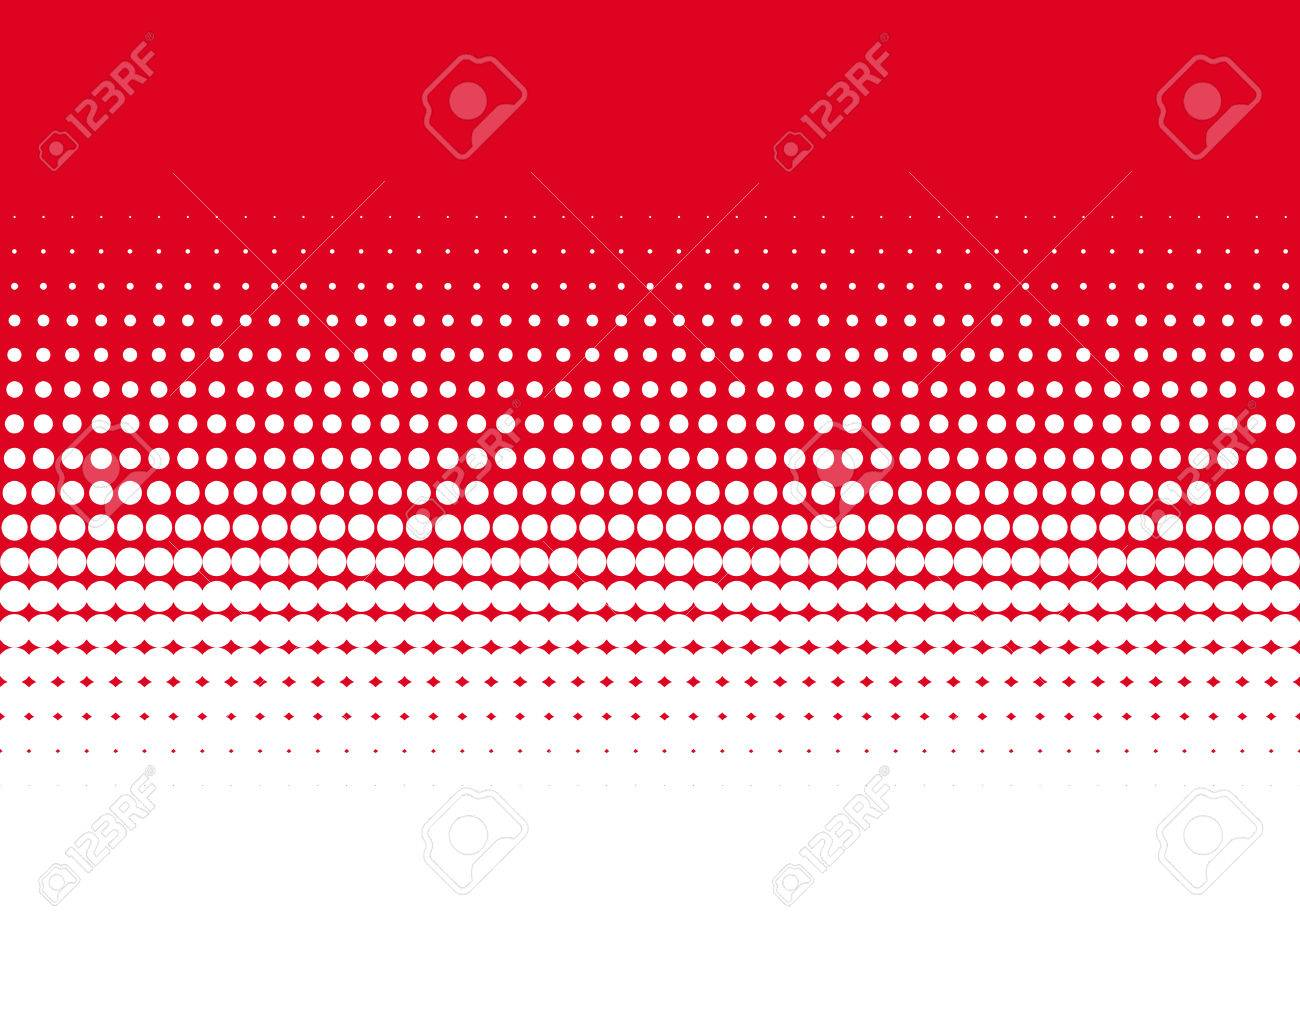 transition of red dots on white background stock photo, picture